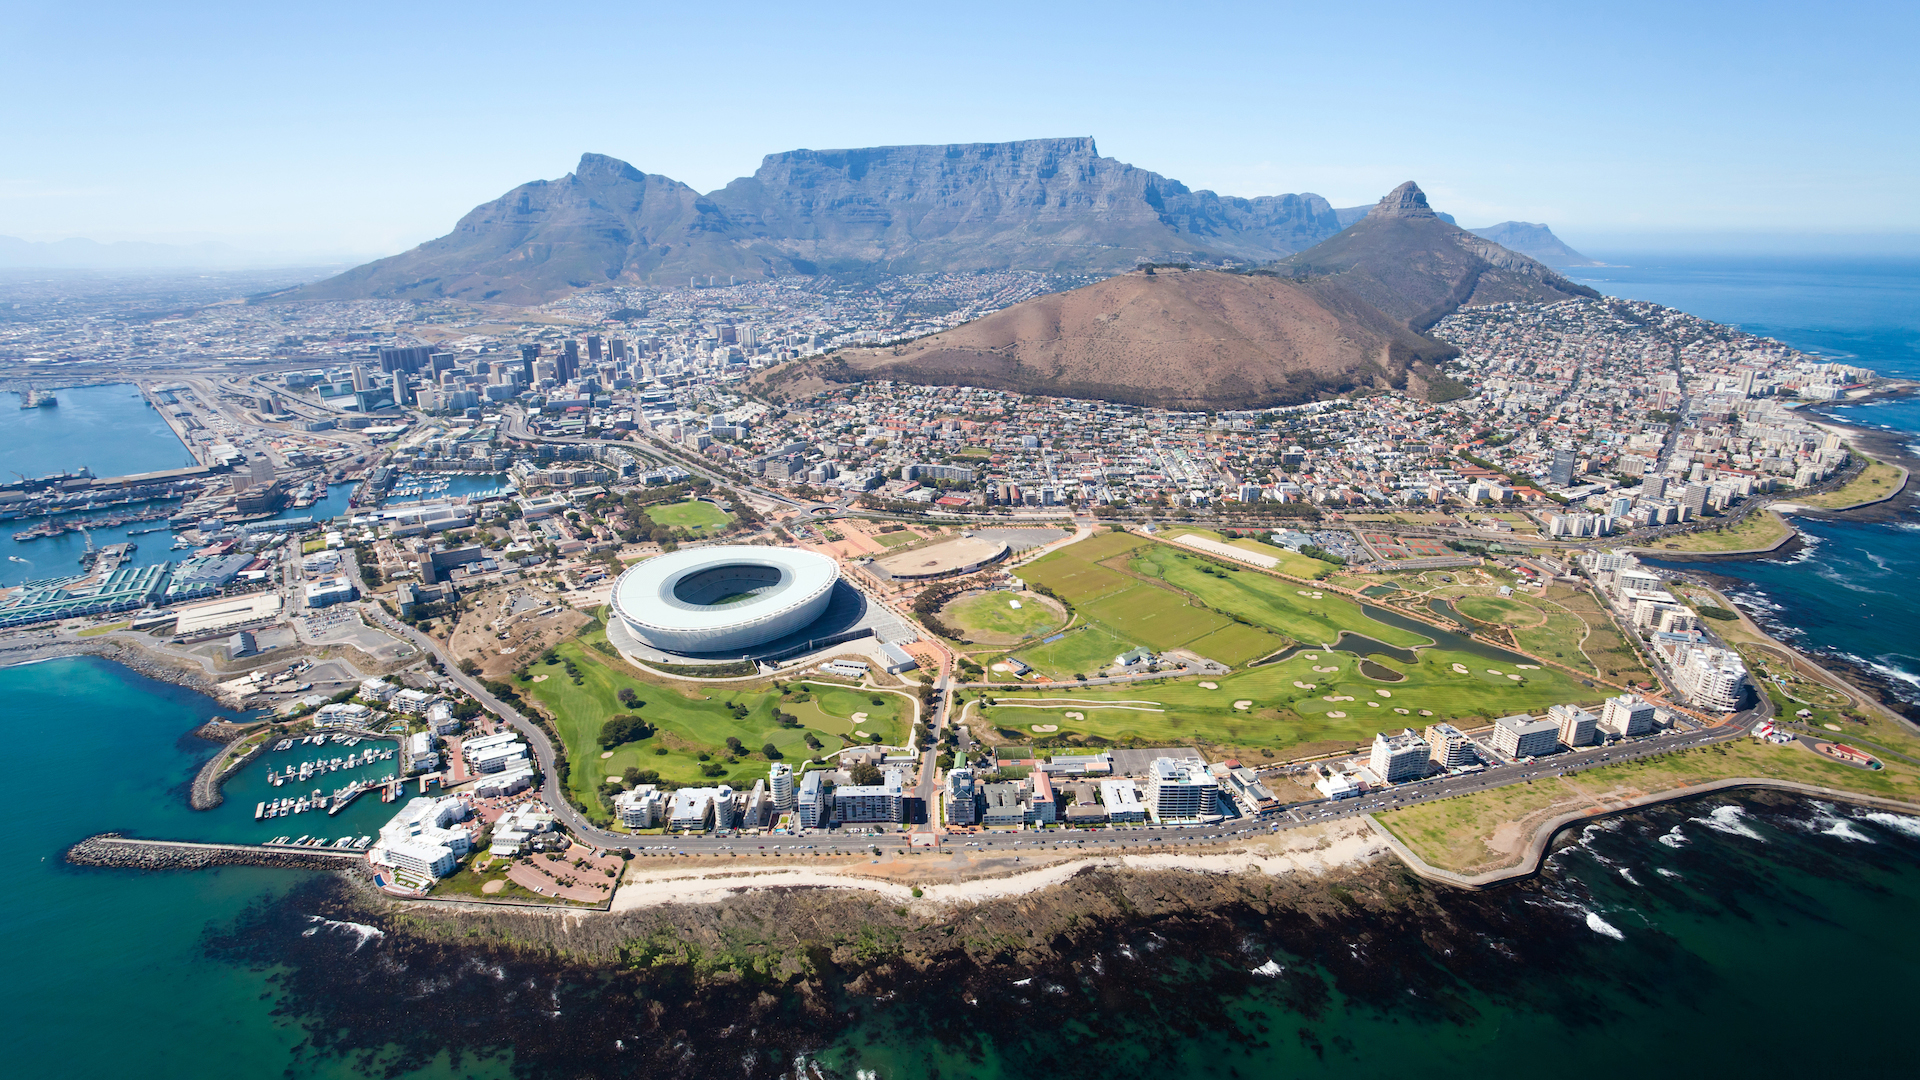 Aerial view of table mountain in South Africa